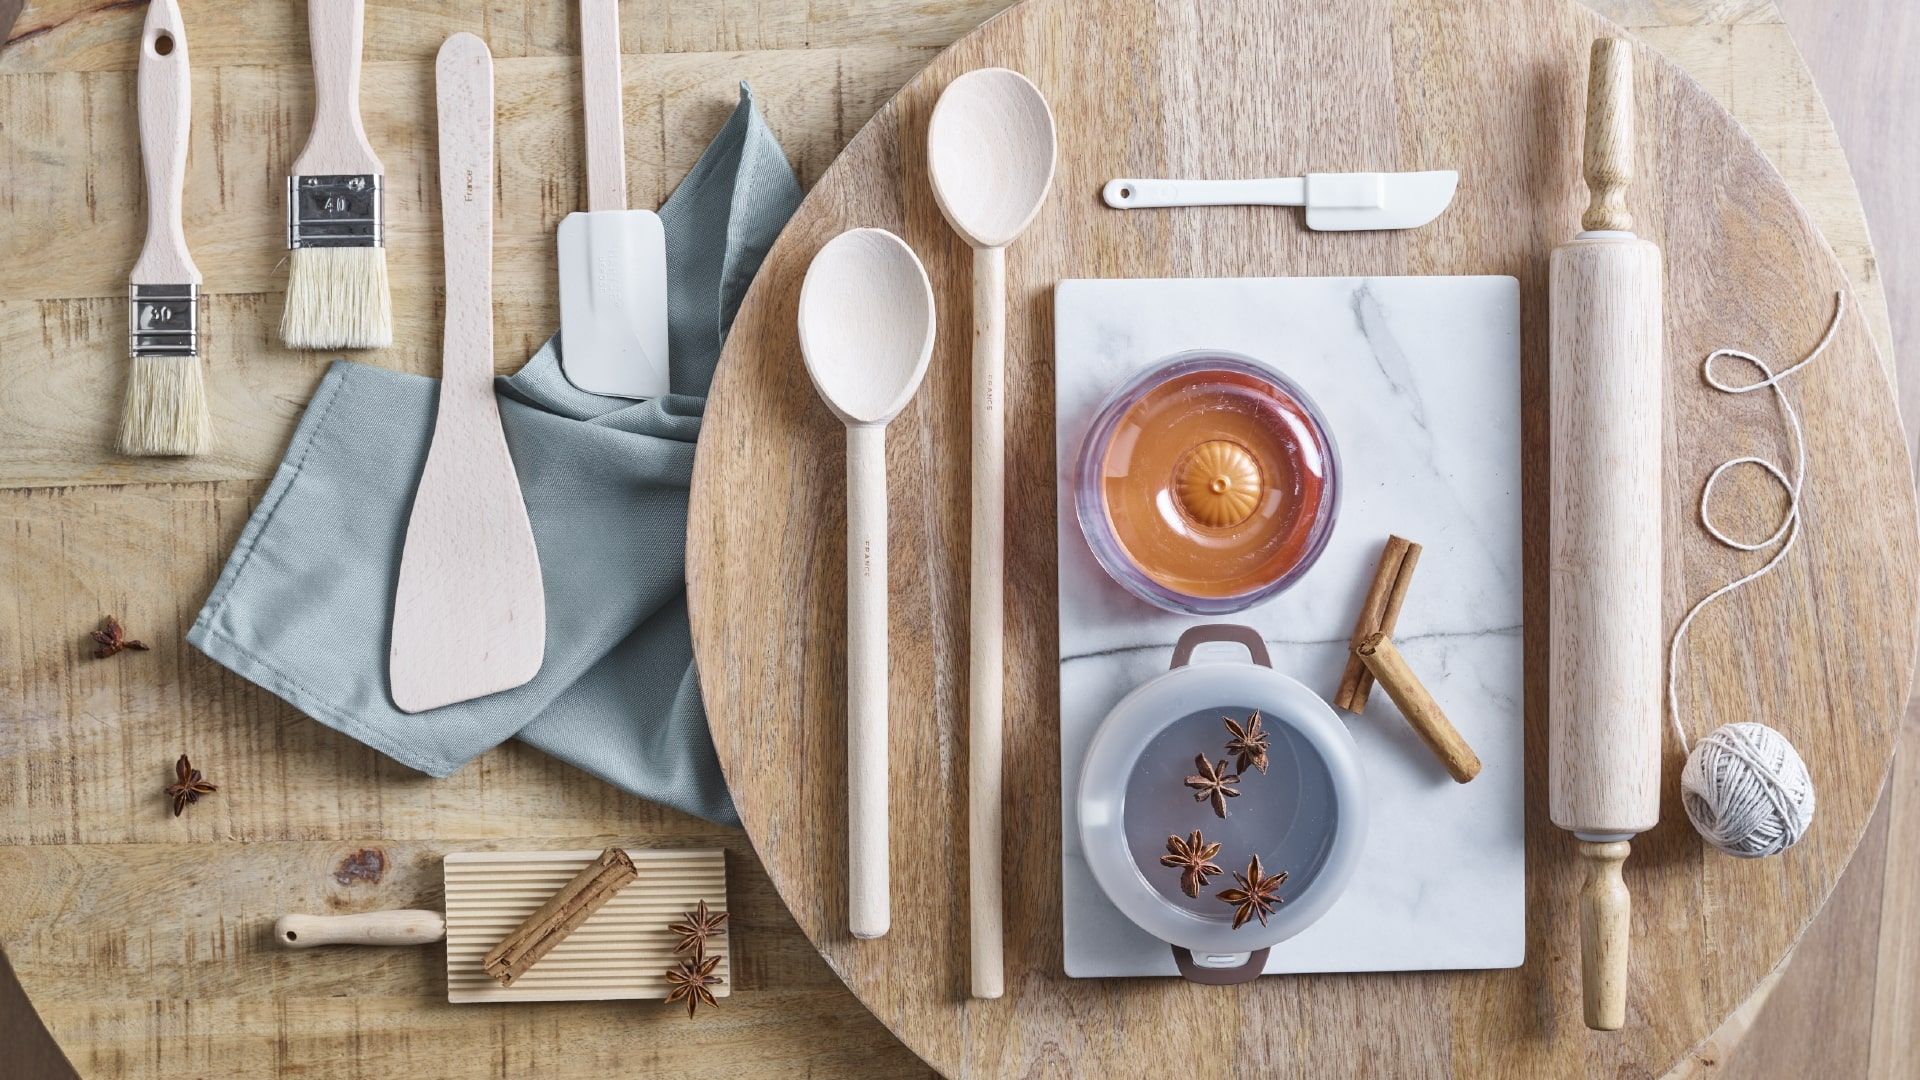 Choosing The Right Kitchen Tools